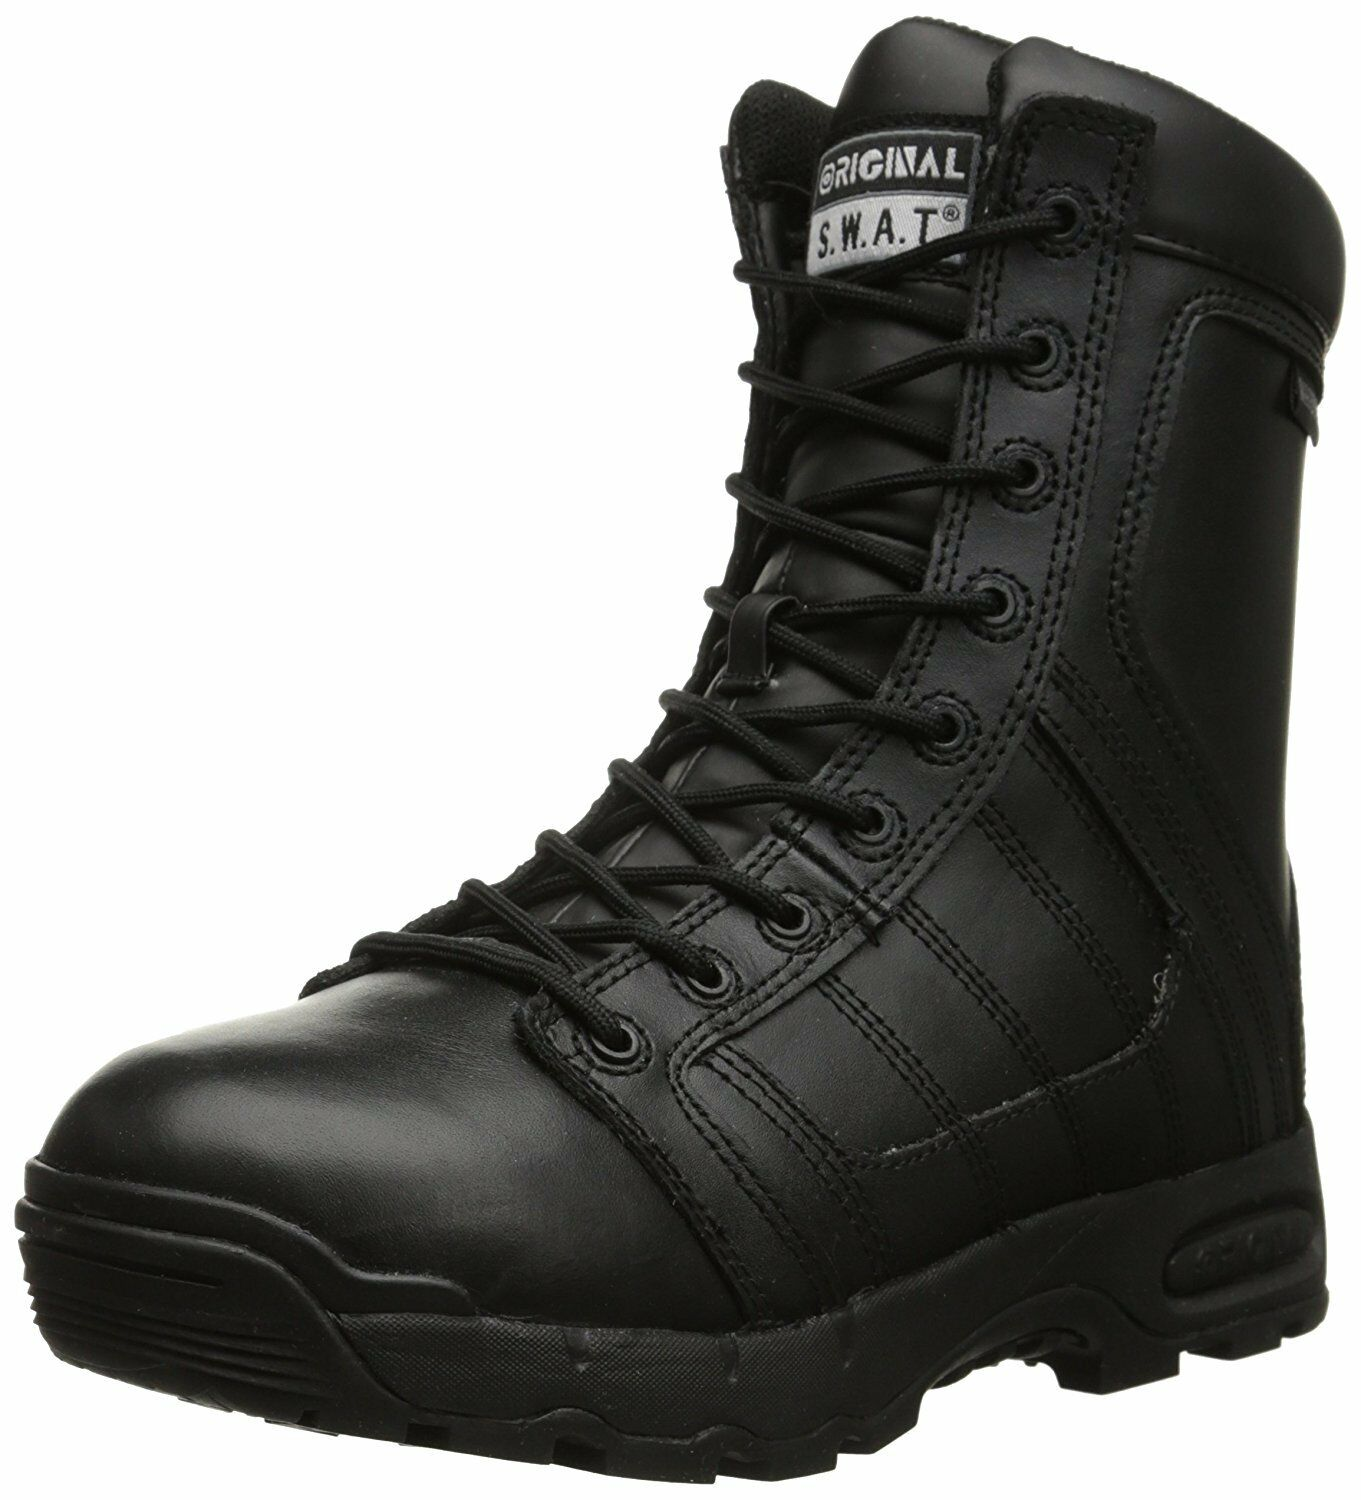 Original S.W.A.T. 123401 Hombres Aire 9 in (approx. 22.86 cm) Impermeable sidezip's Metro bota, Negro